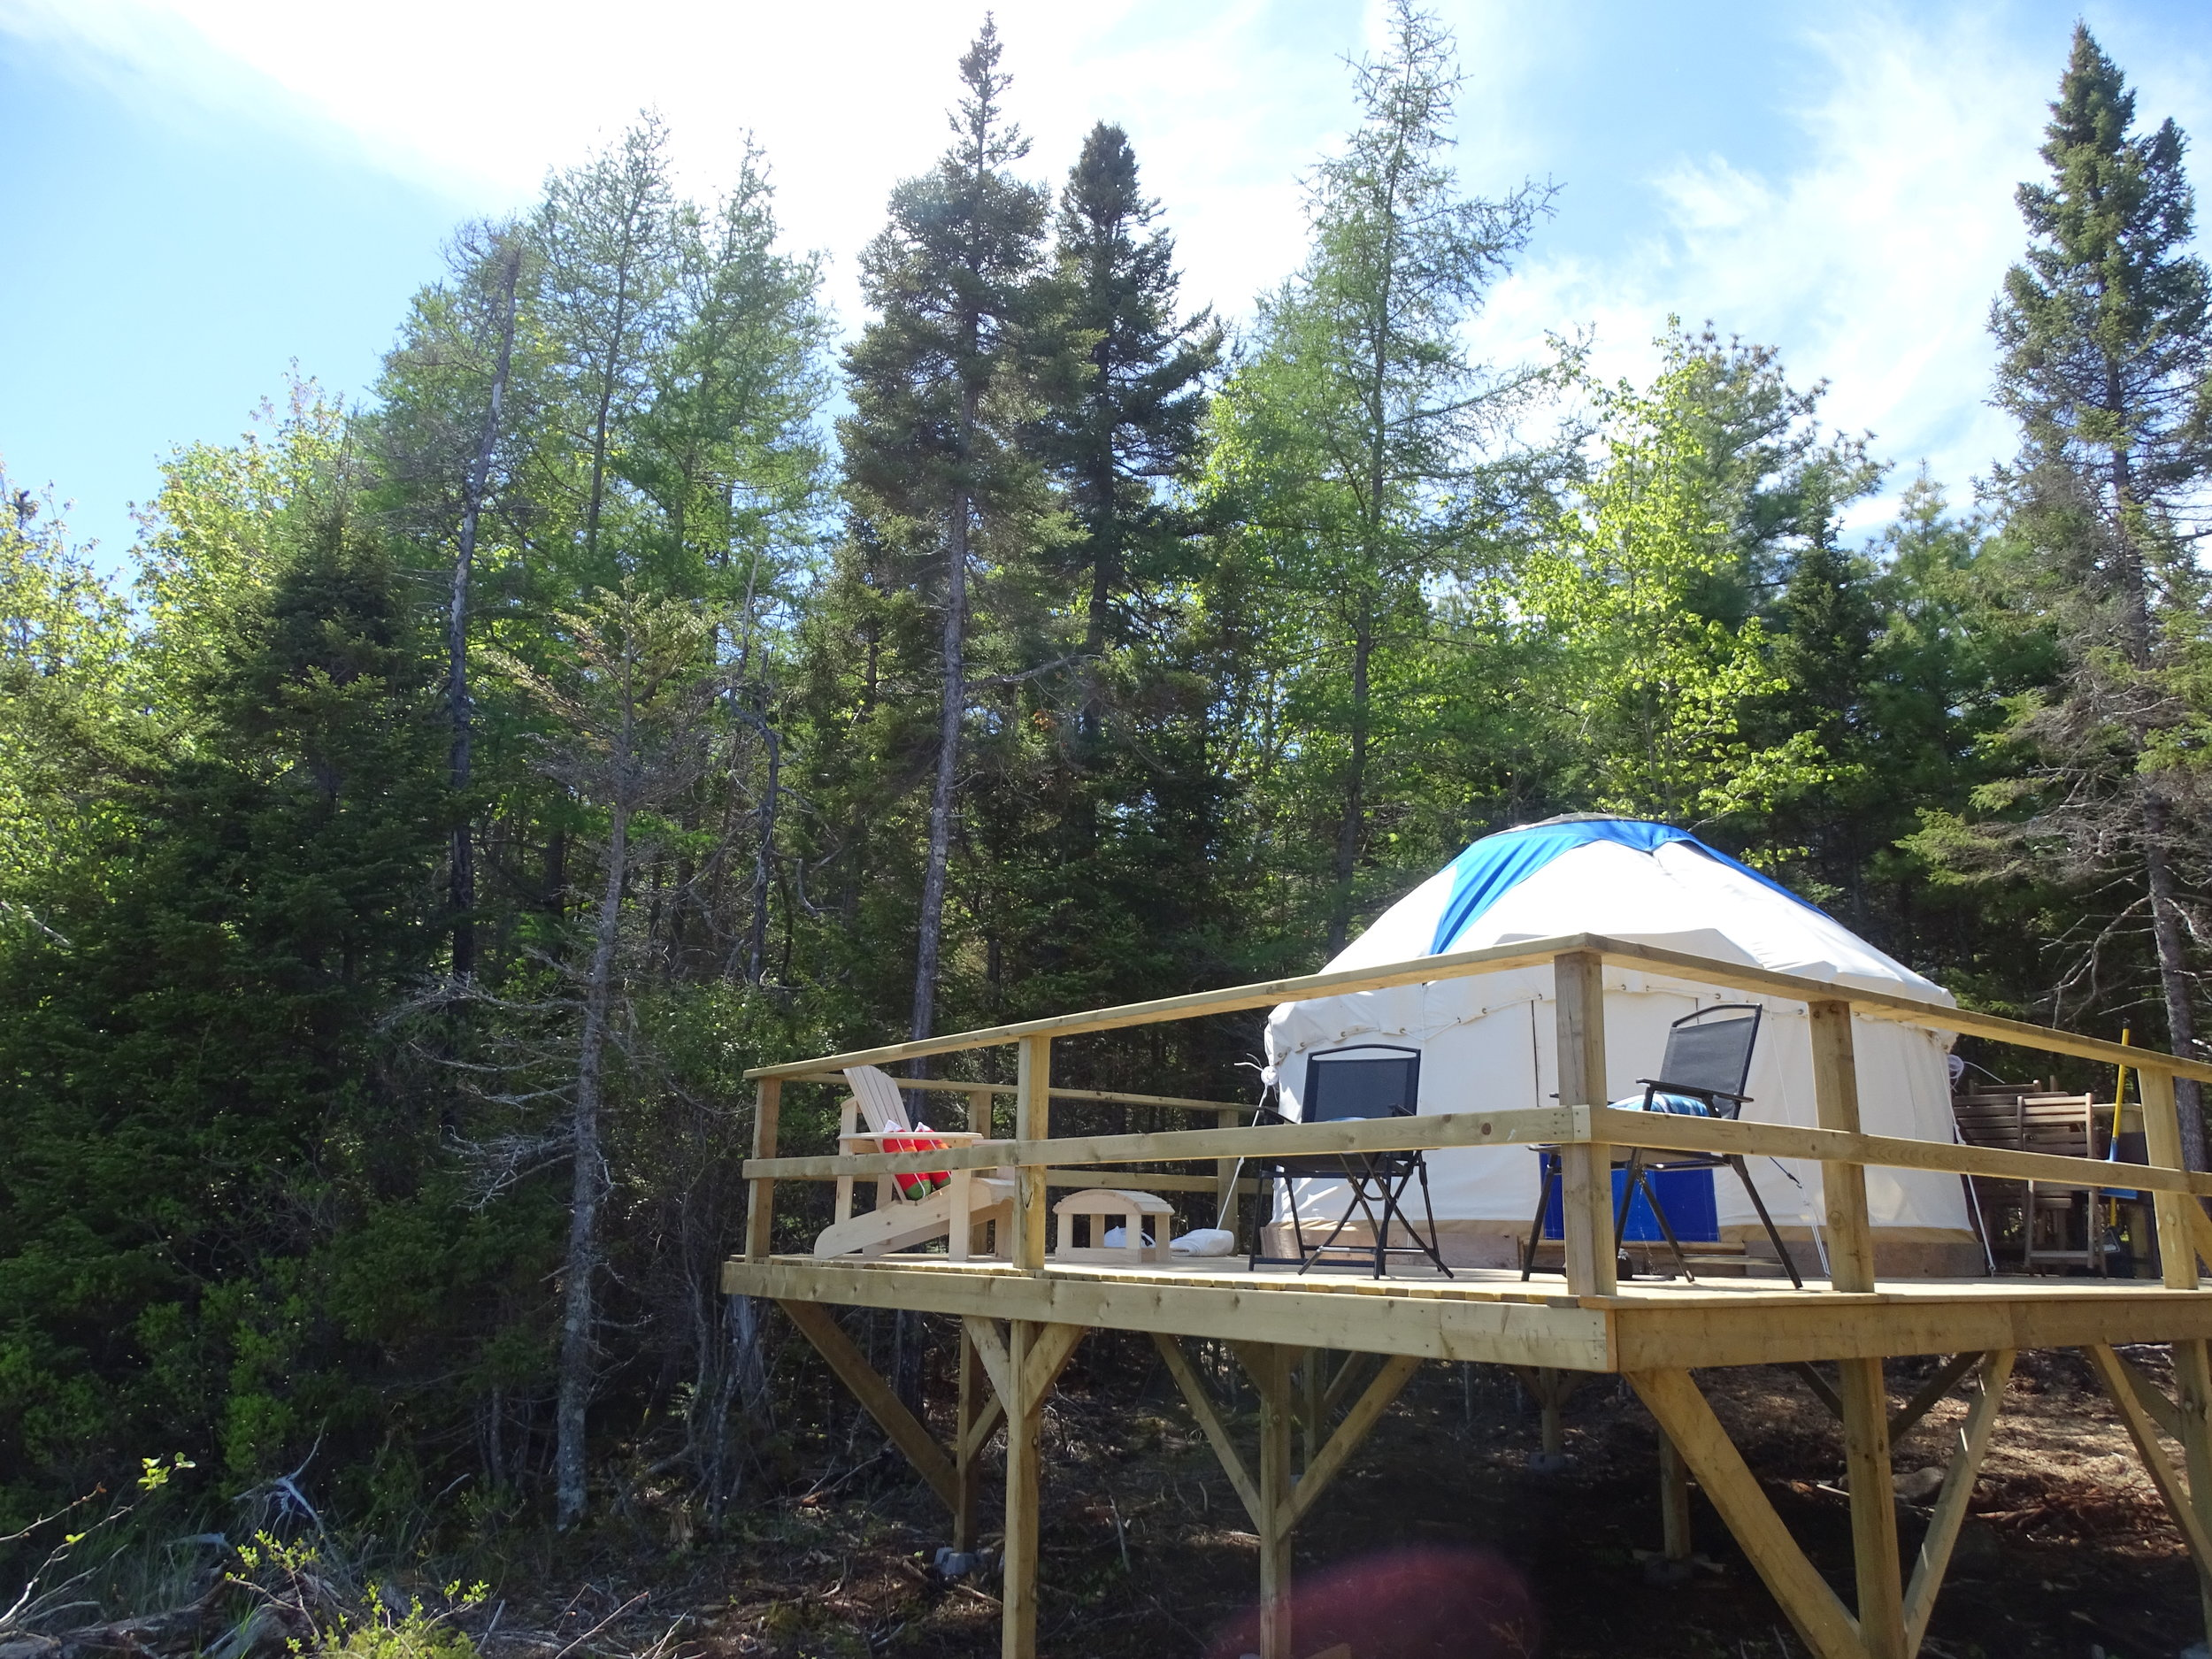 Look how happy our yurt looks, up in its treehouse!